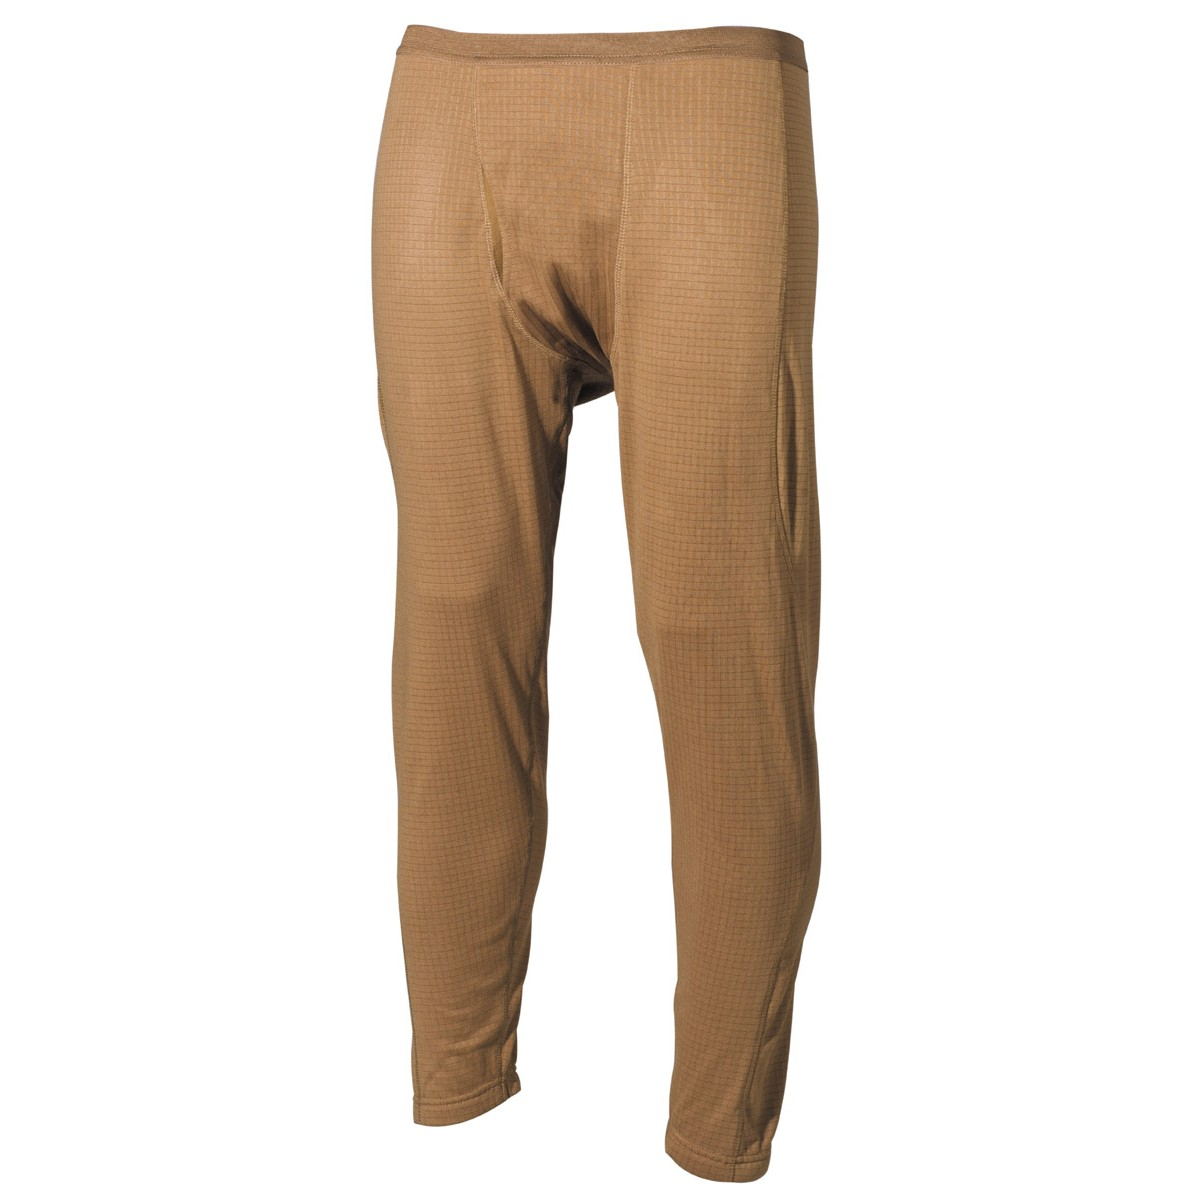 Military/Outdoor Underpants Level 2 Gen.3 Breathable Moisture Control - Coyote